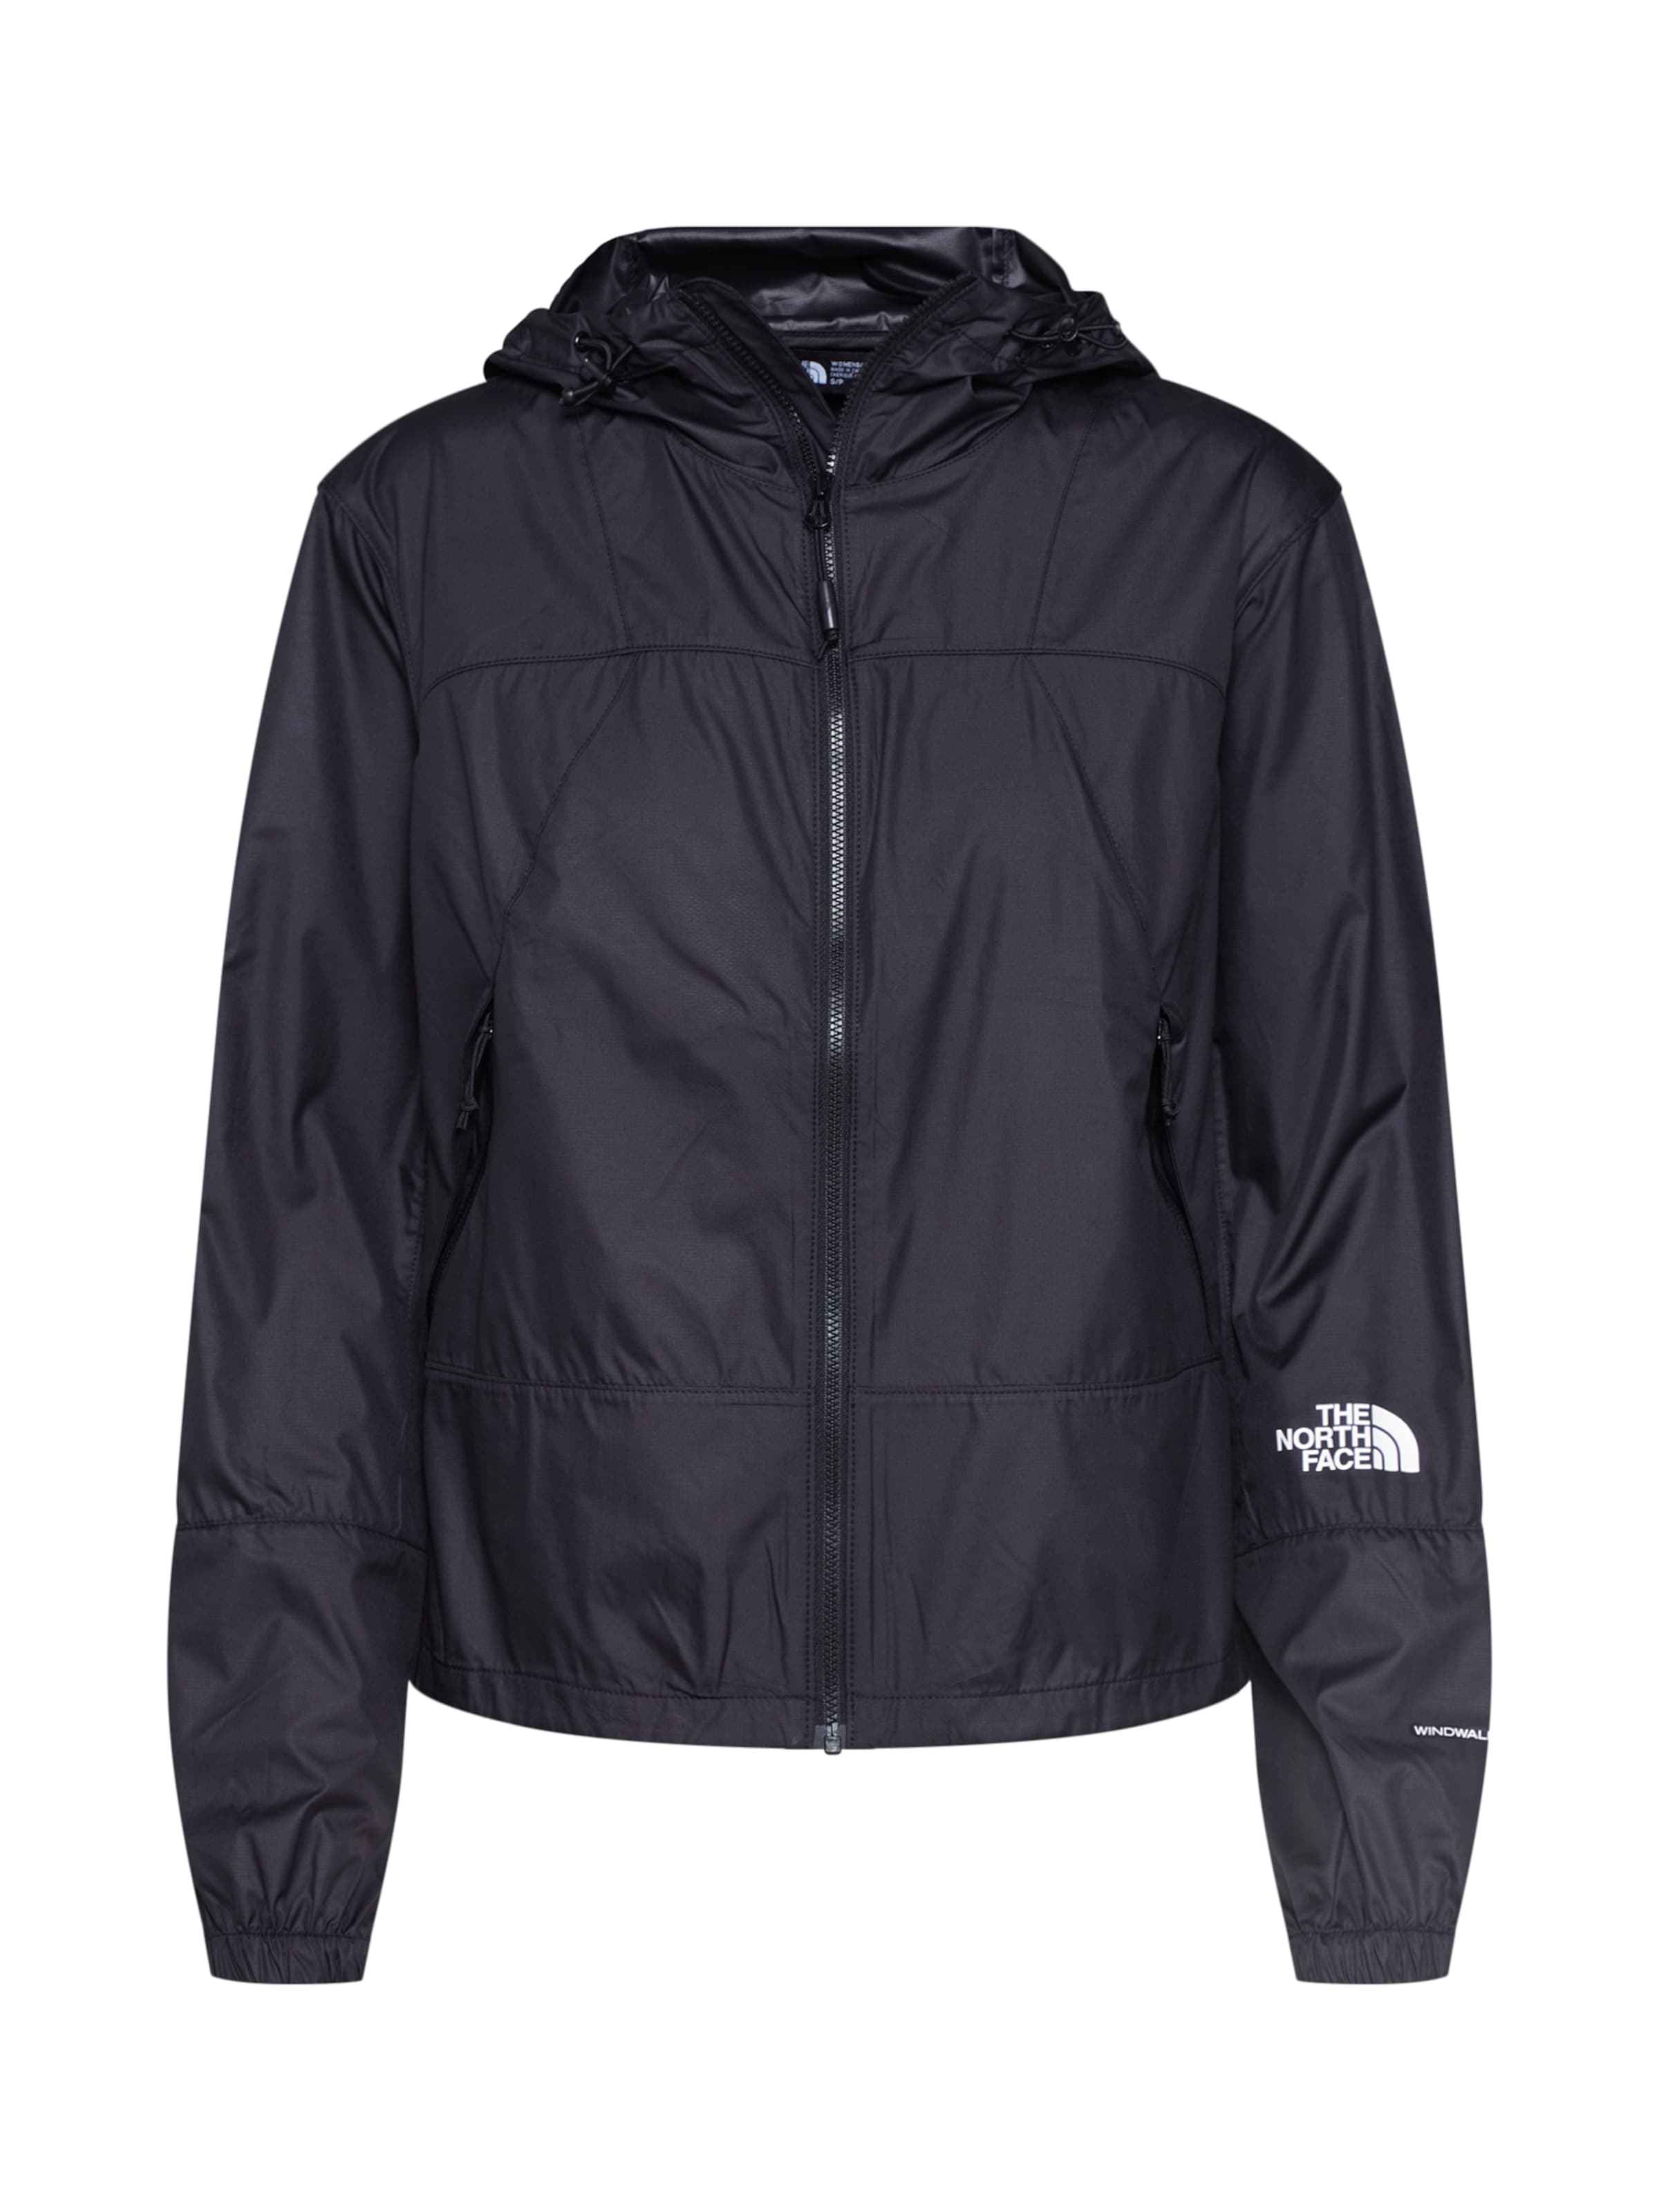 The Face North Jacke In Schwarz c3ul1FKJT